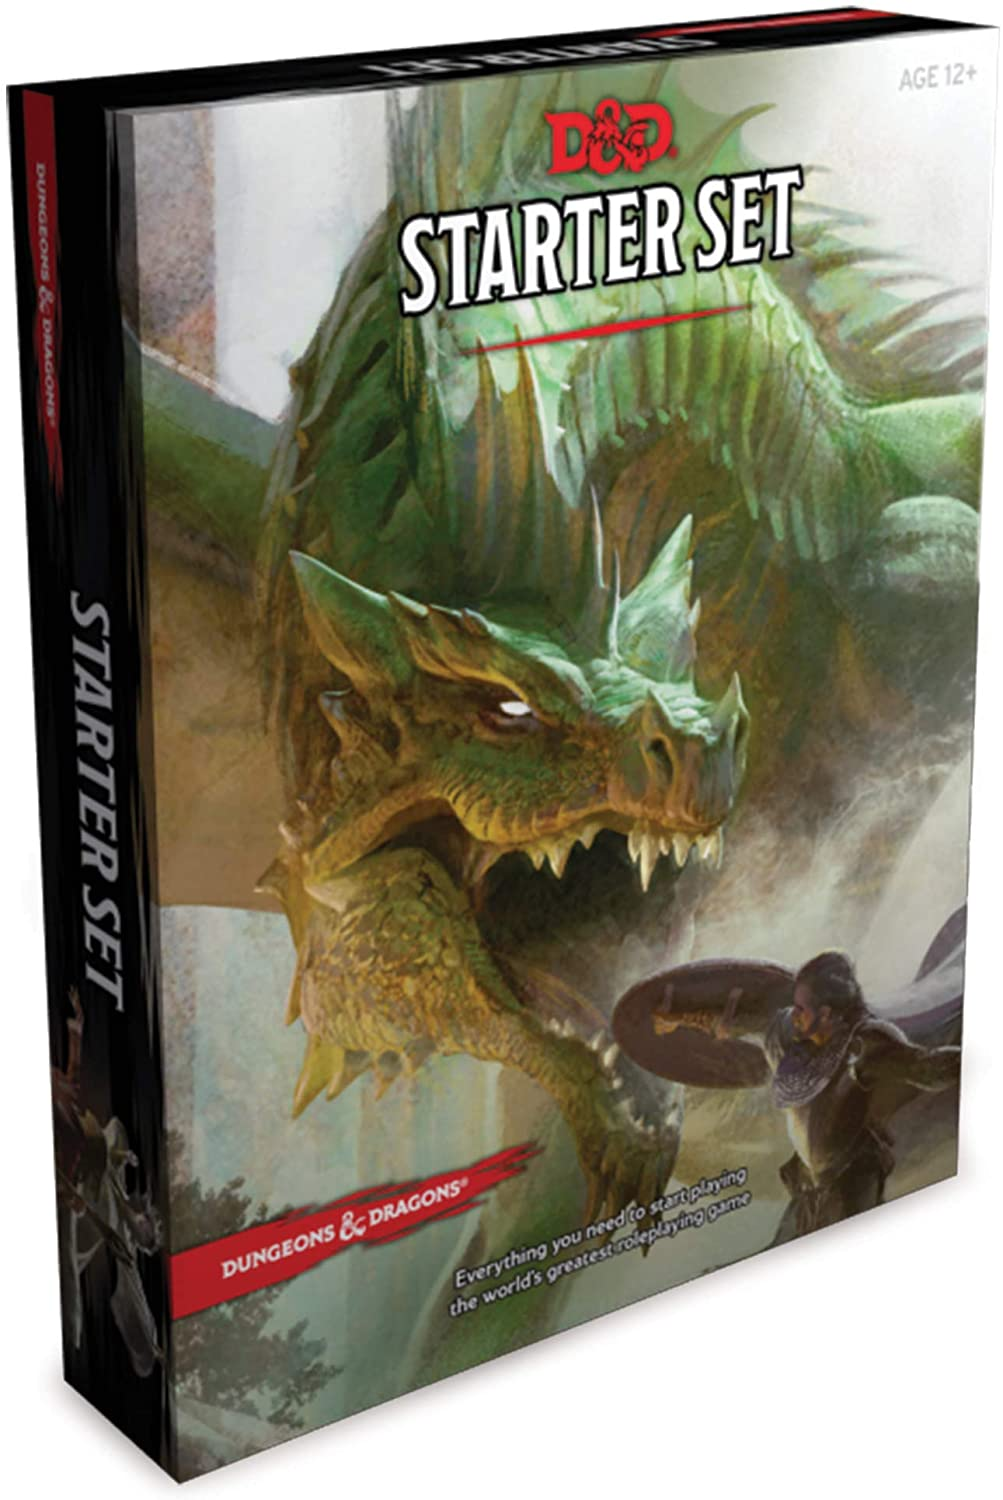 D&D Starter Set | Comic Shop Crawley